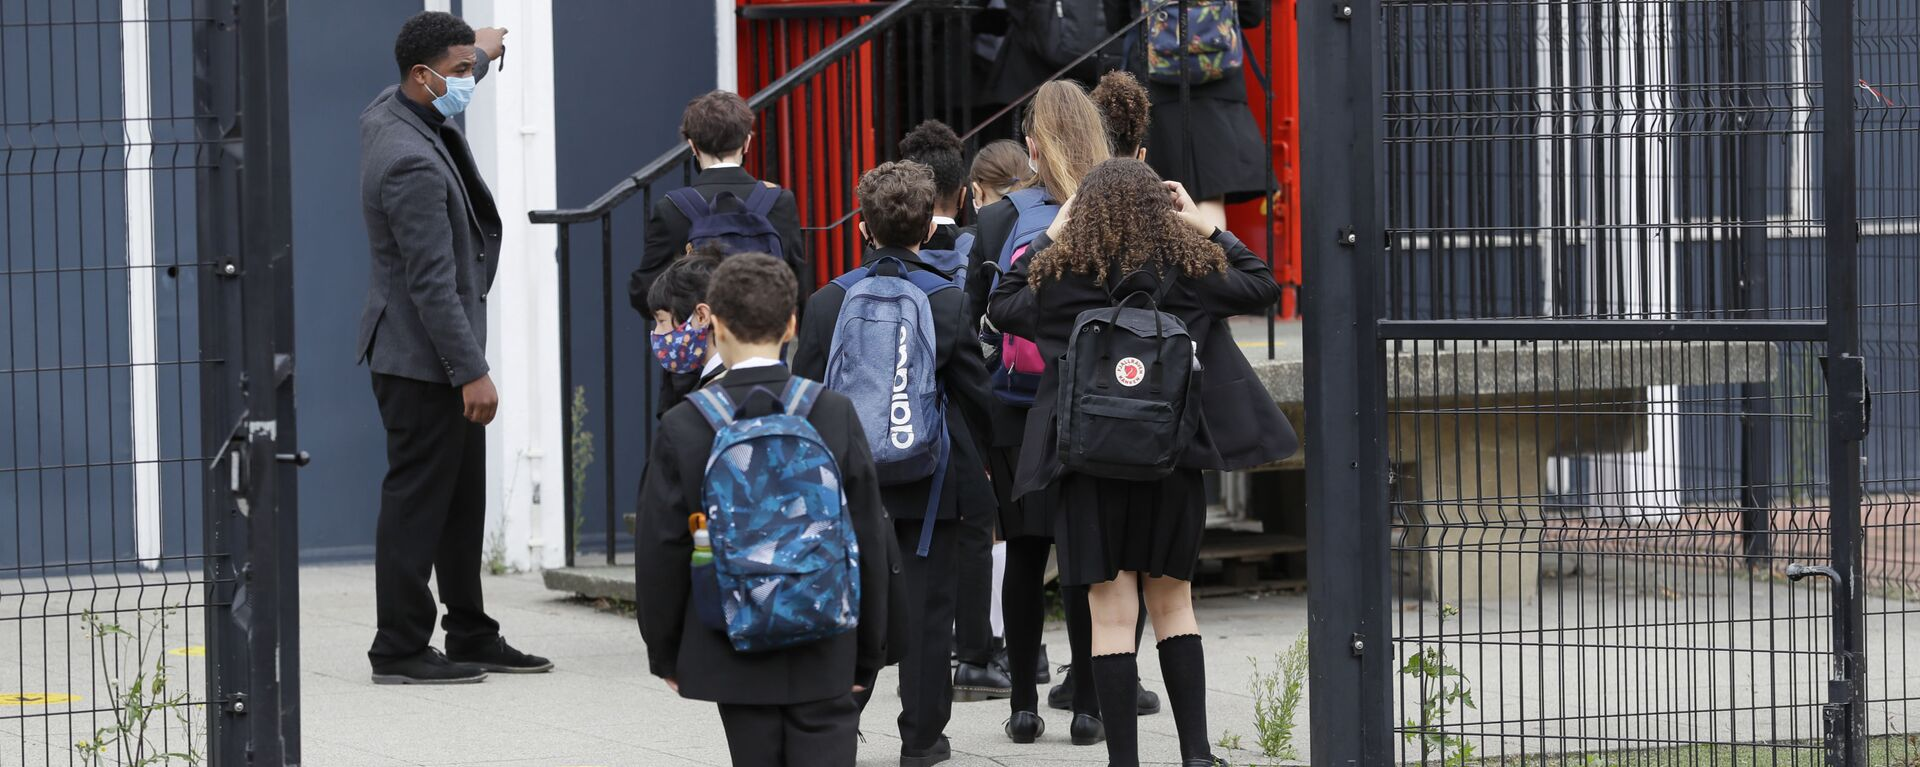 Year seven pupils are directed to socially distance as they arrive for their first day at Kingsdale Foundation School in London, Thursday, Sept. 3, 2020 - Sputnik International, 1920